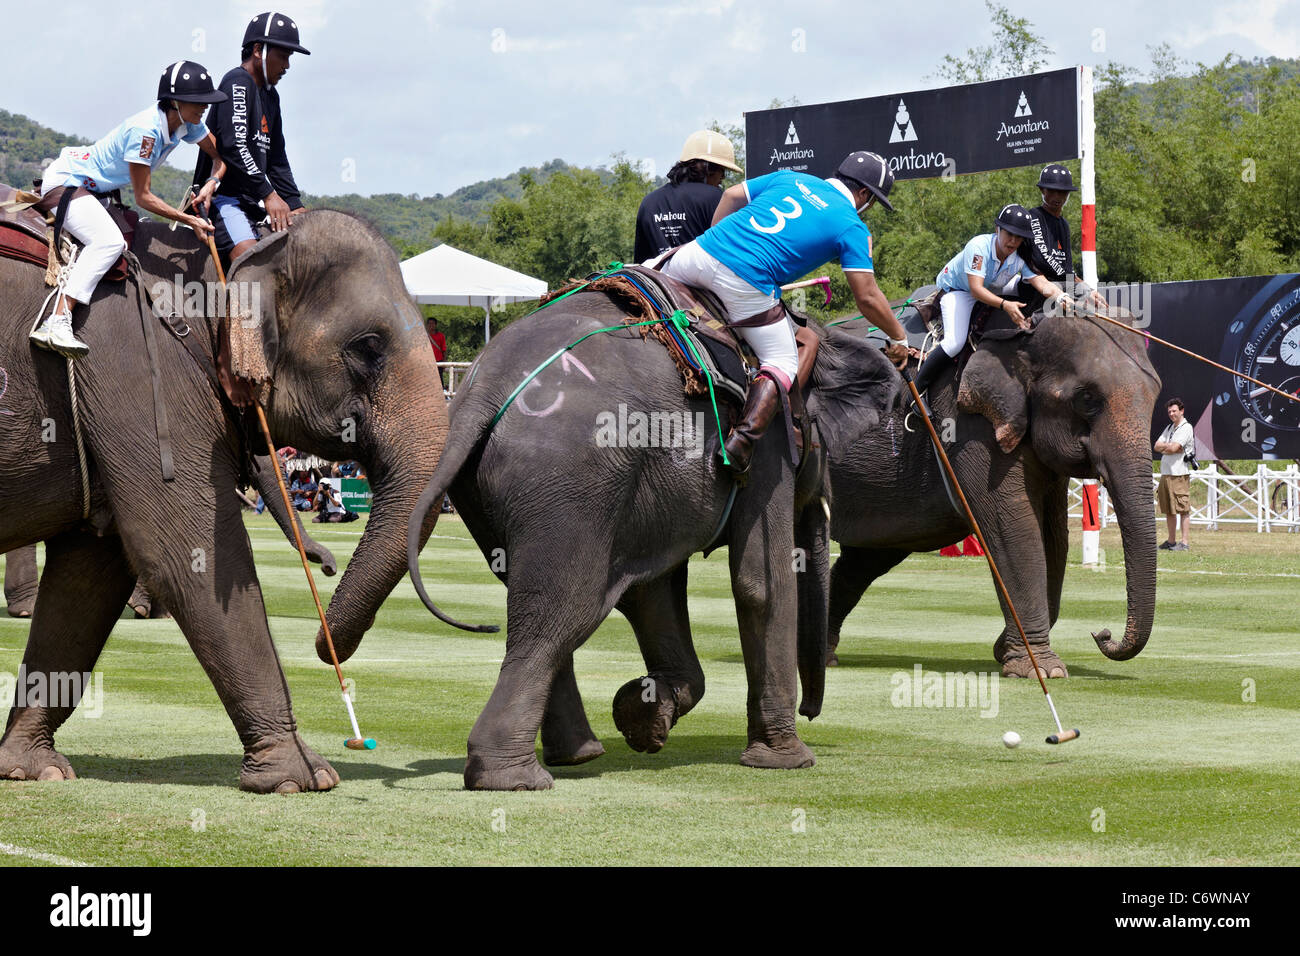 elephant-polo-match-action-2011-kings-cu